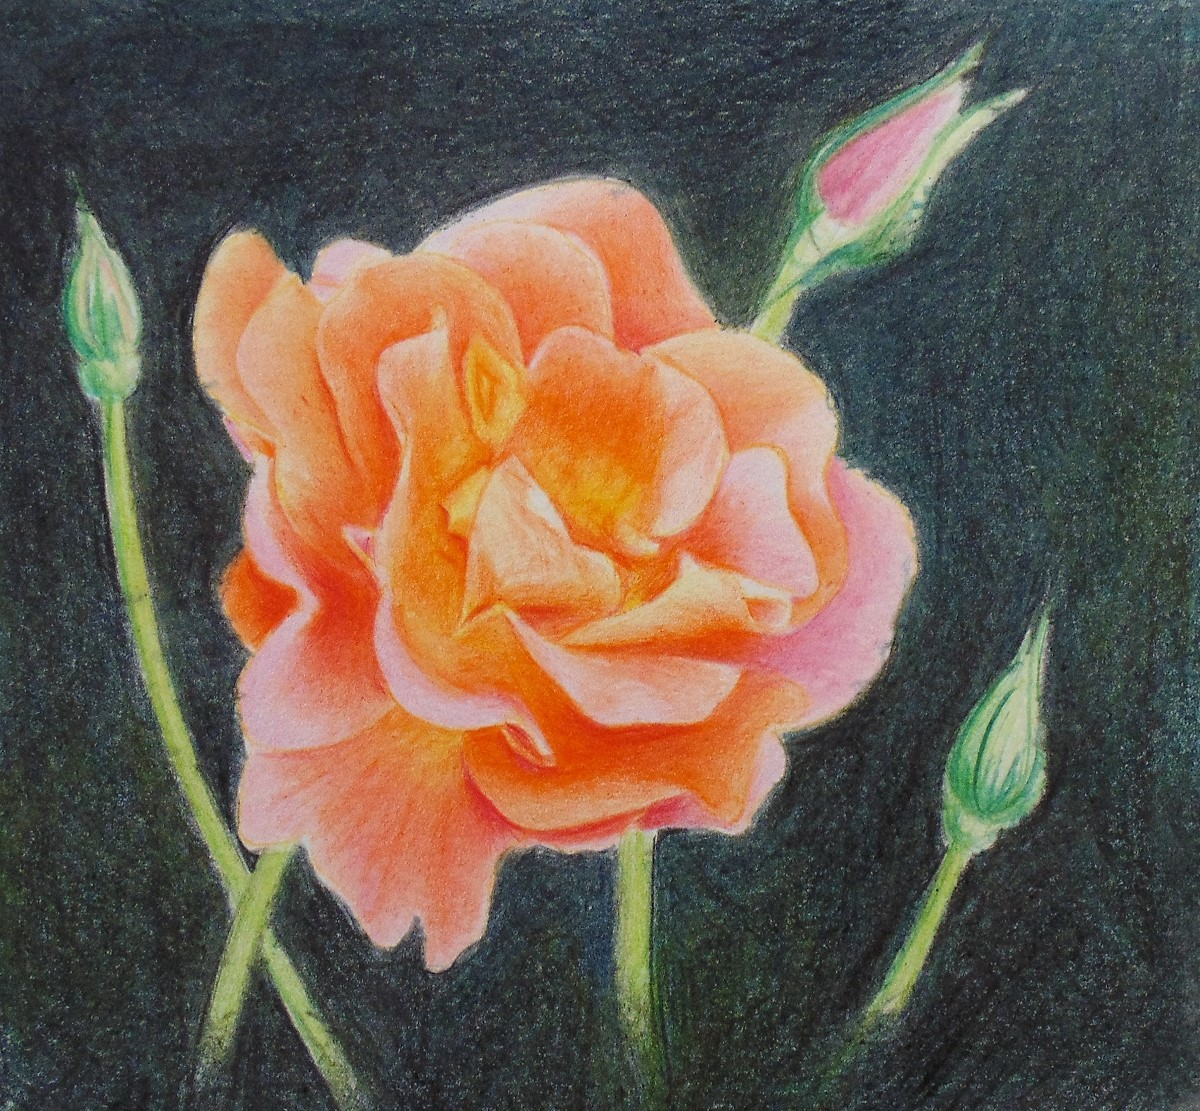 How To Draw A Rose With Colored Pencils Skill Level : 1 Beginner